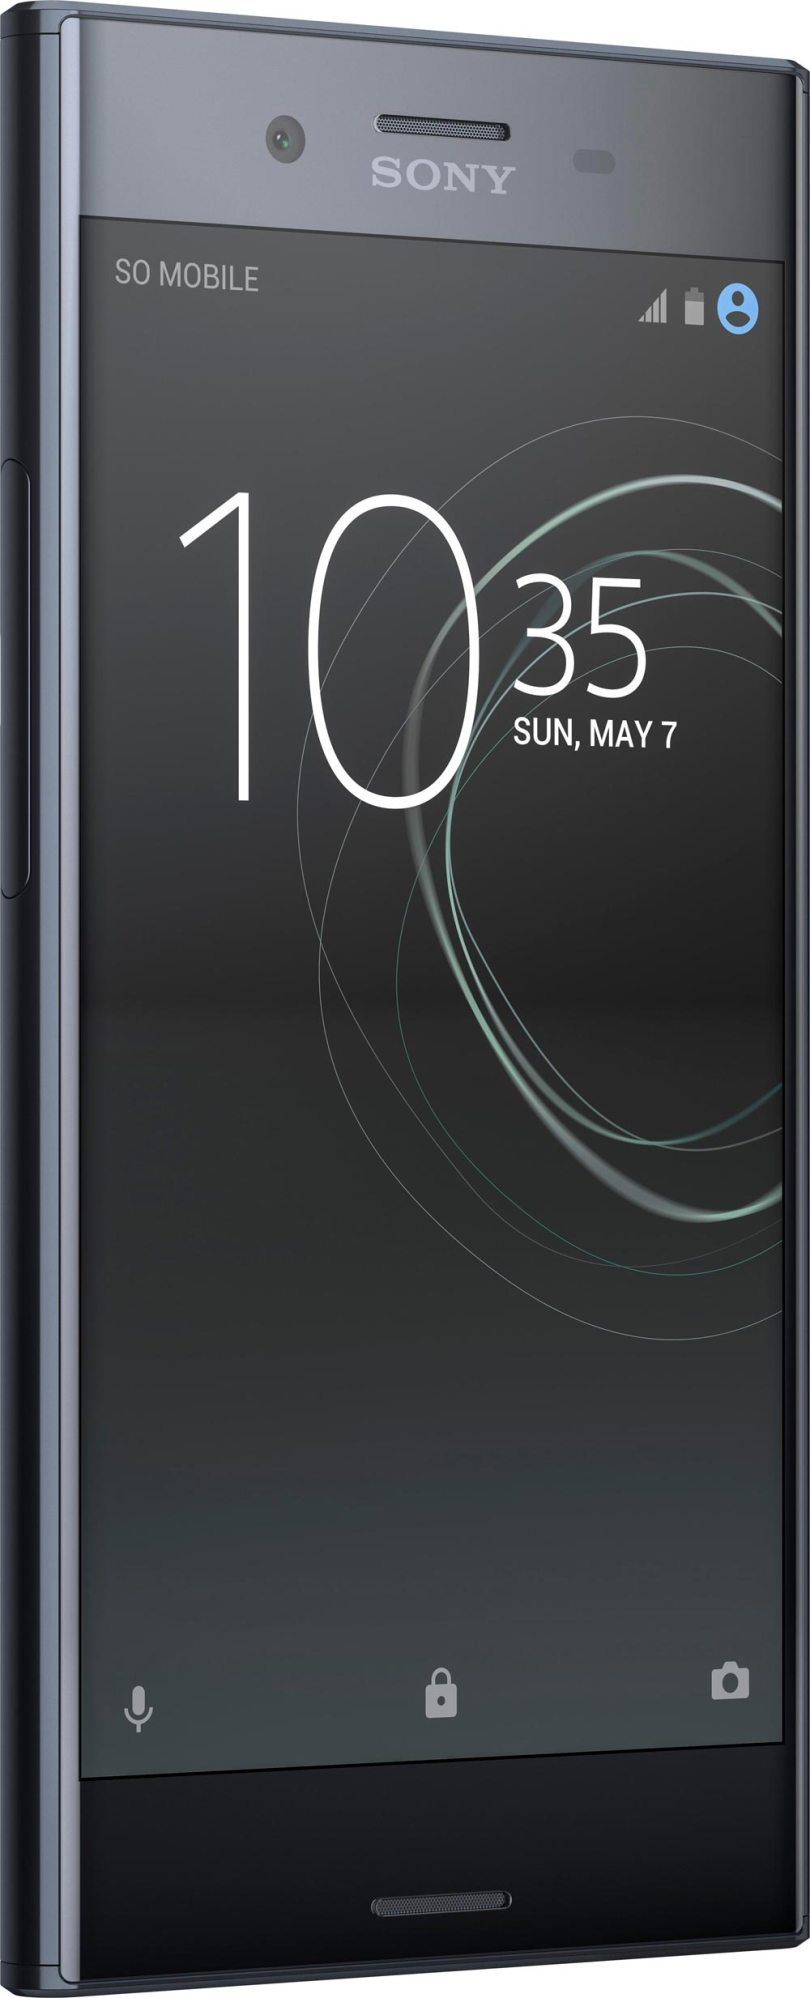 Sony Xperia XZ Premium unlocked smartphone at Best Buy